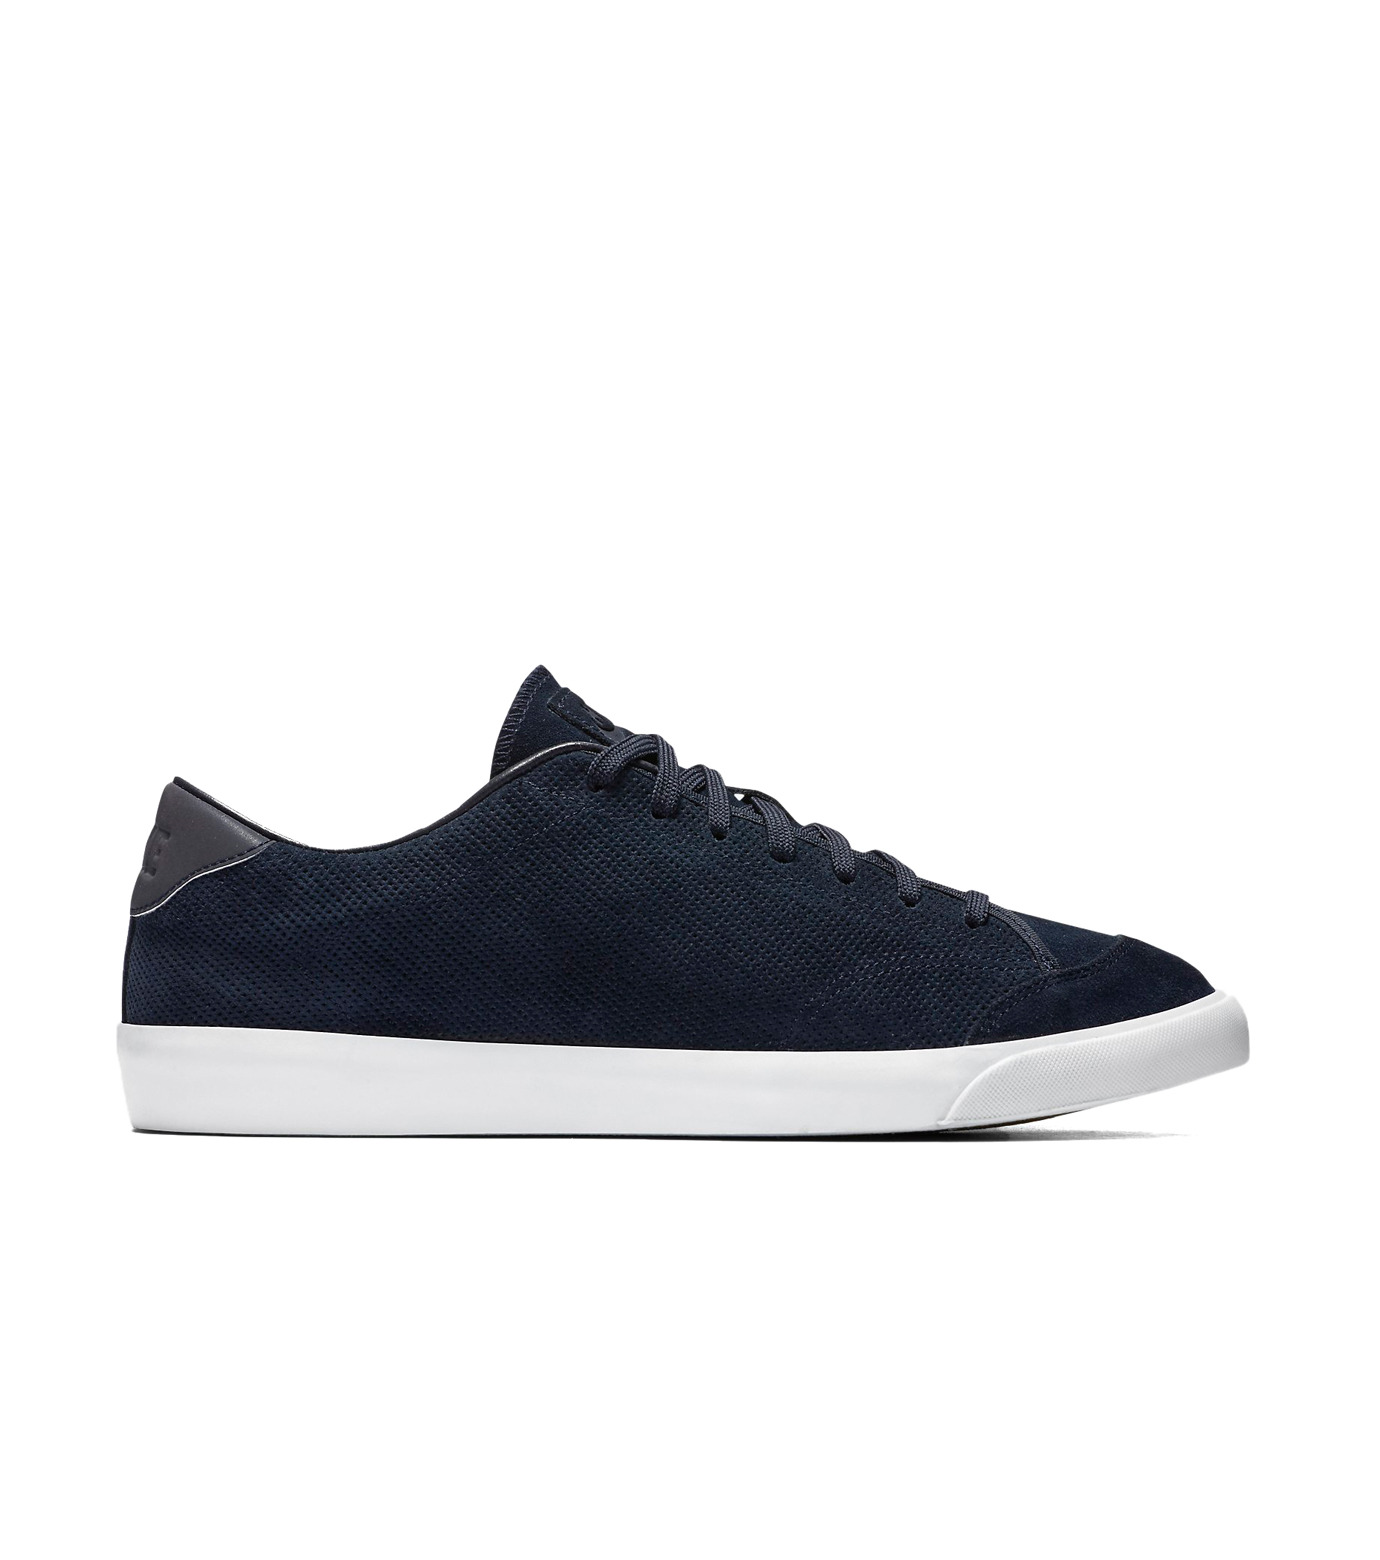 NIKE(ナイキ)のALL COURT 2 LOW-NAVY(シューズ/shoes)-864719-400-93 拡大詳細画像1